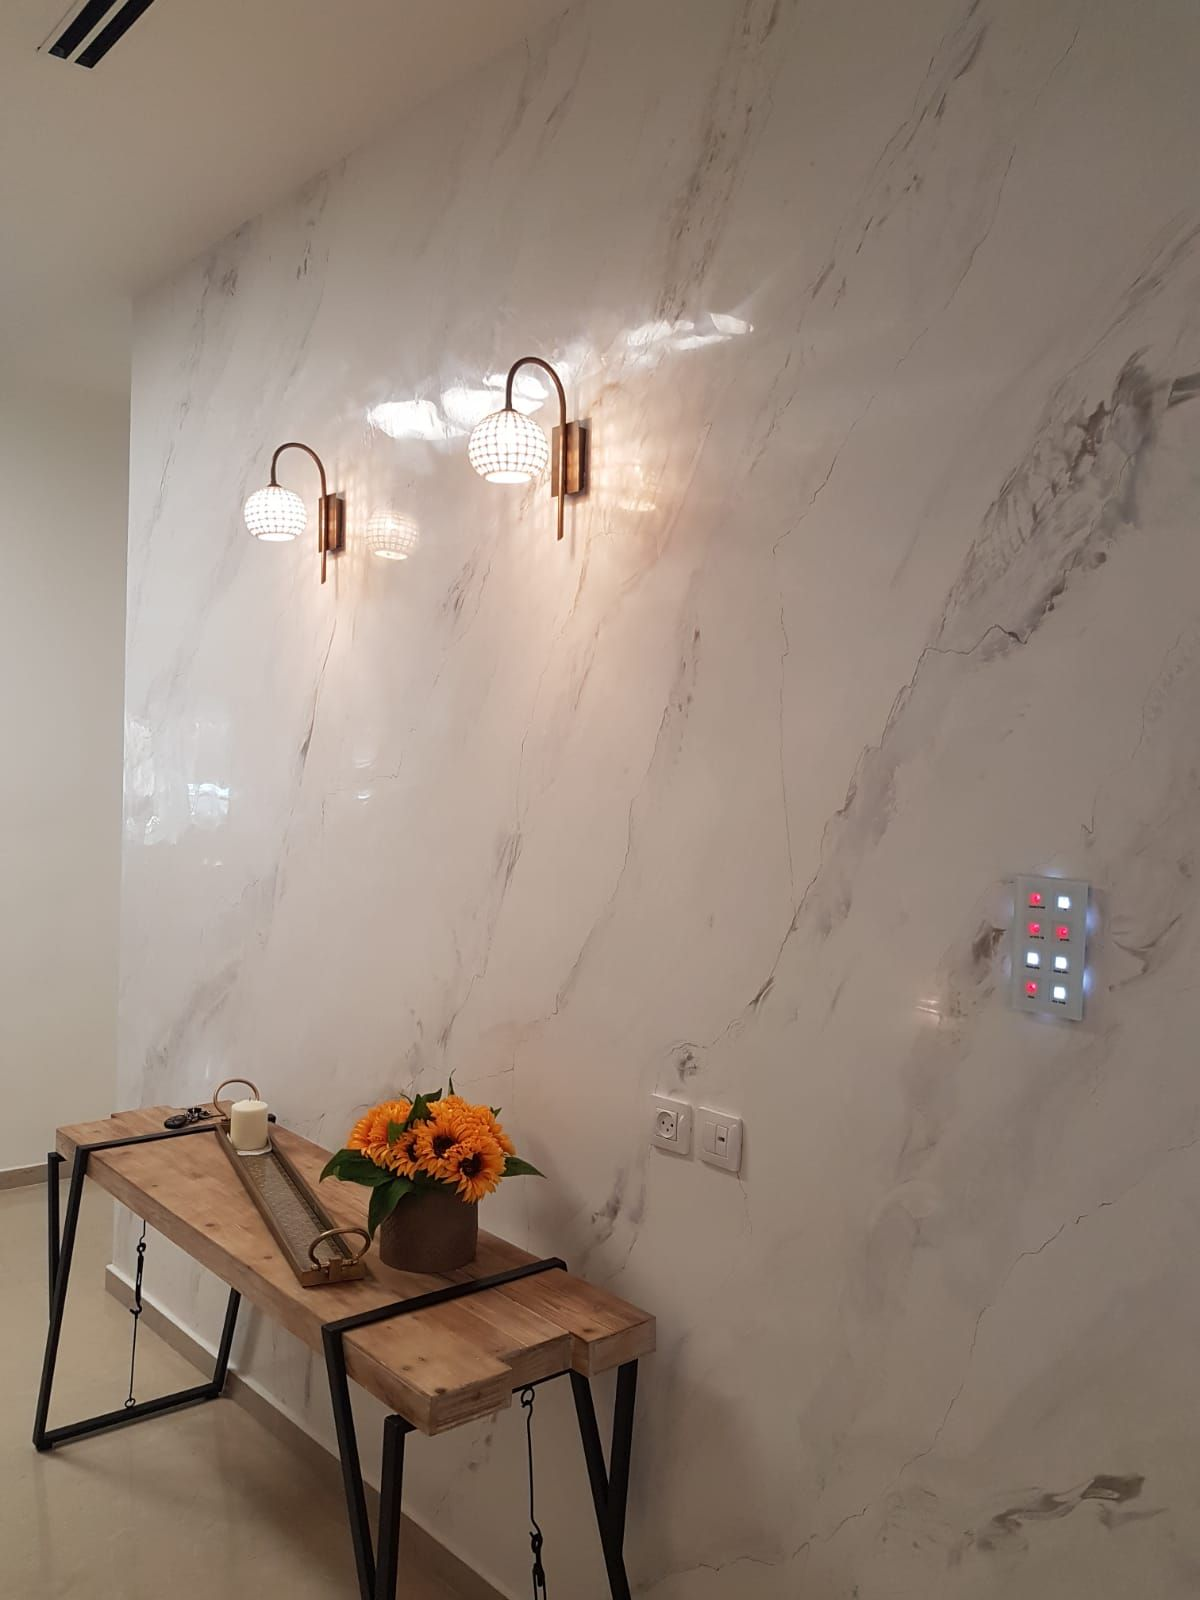 Match Your Carrara Marble Counter Tops To The Walls With Our Stucco Lamundo Venetian Plaster Carrara Mar Venetian Plaster Walls Venetian Plaster Marble Decor